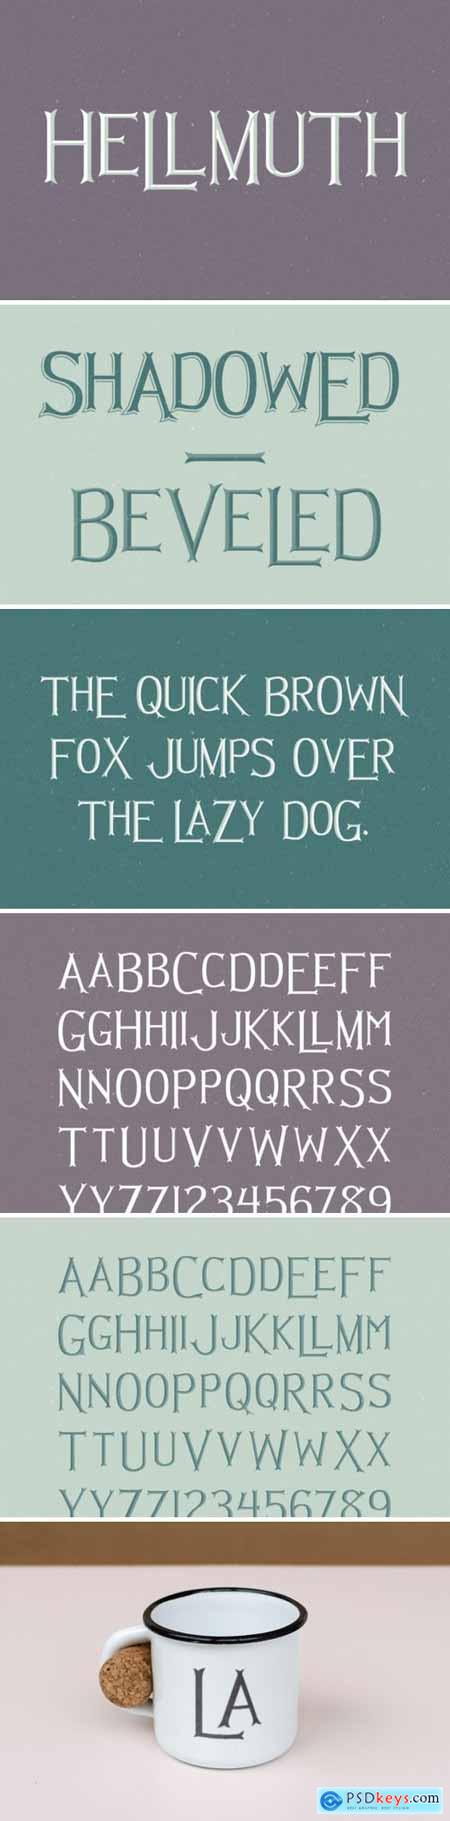 Hellmuth Family Font